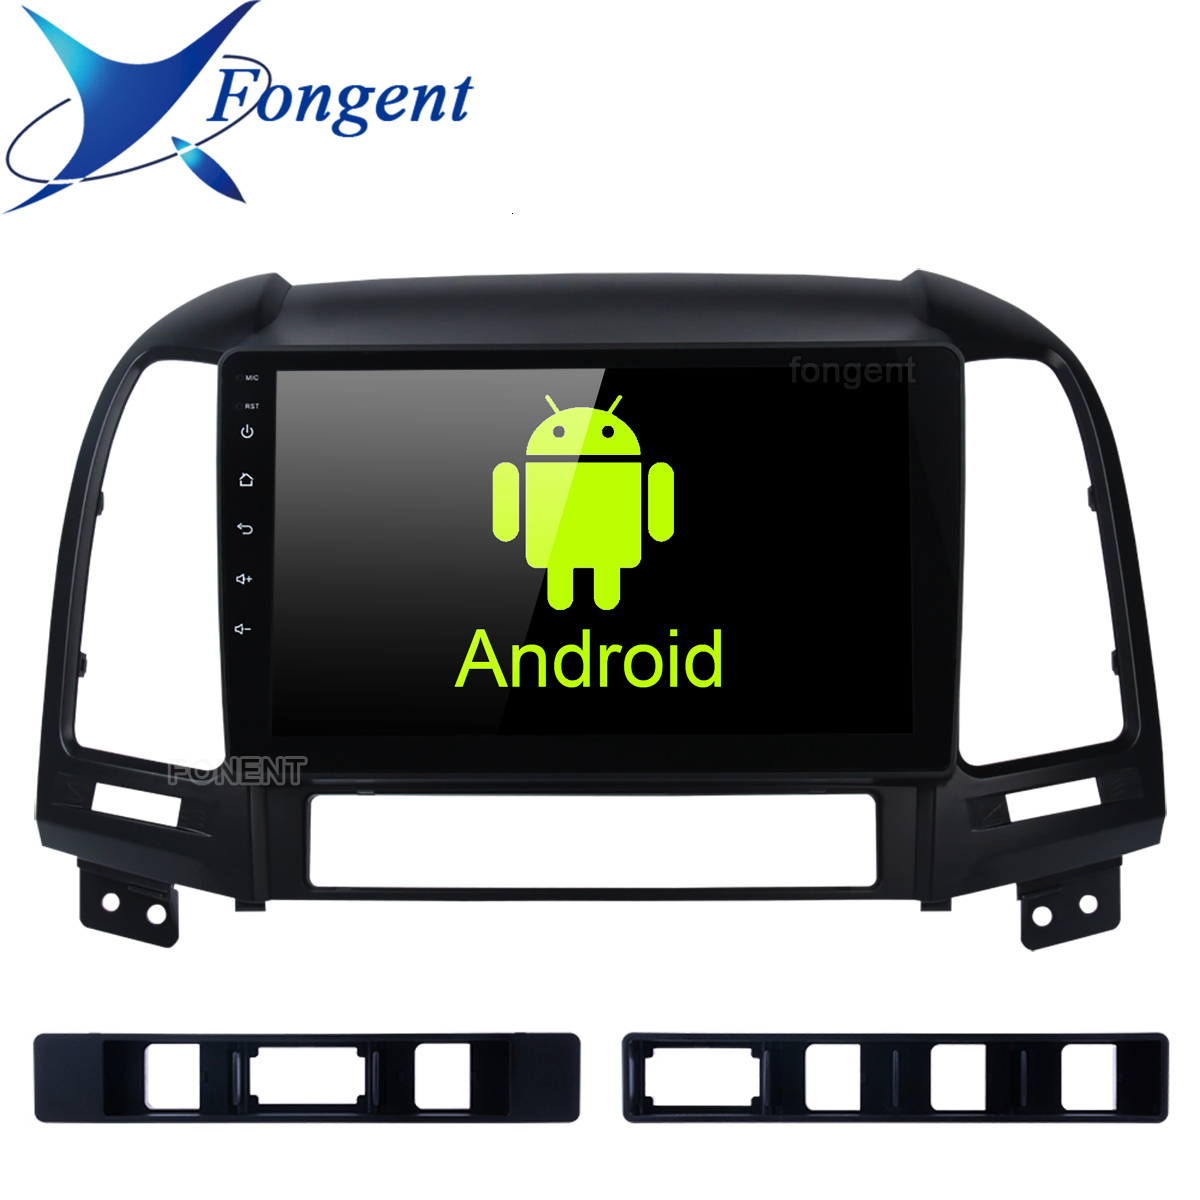 Für Hyundai Santa Fe 2005 2006 2007 2008 2009 2010 2011 2012 Android 9.0 Auto Radio Multimedia Player Gps Head <font><b>Unit</b></font> stereo Audio image